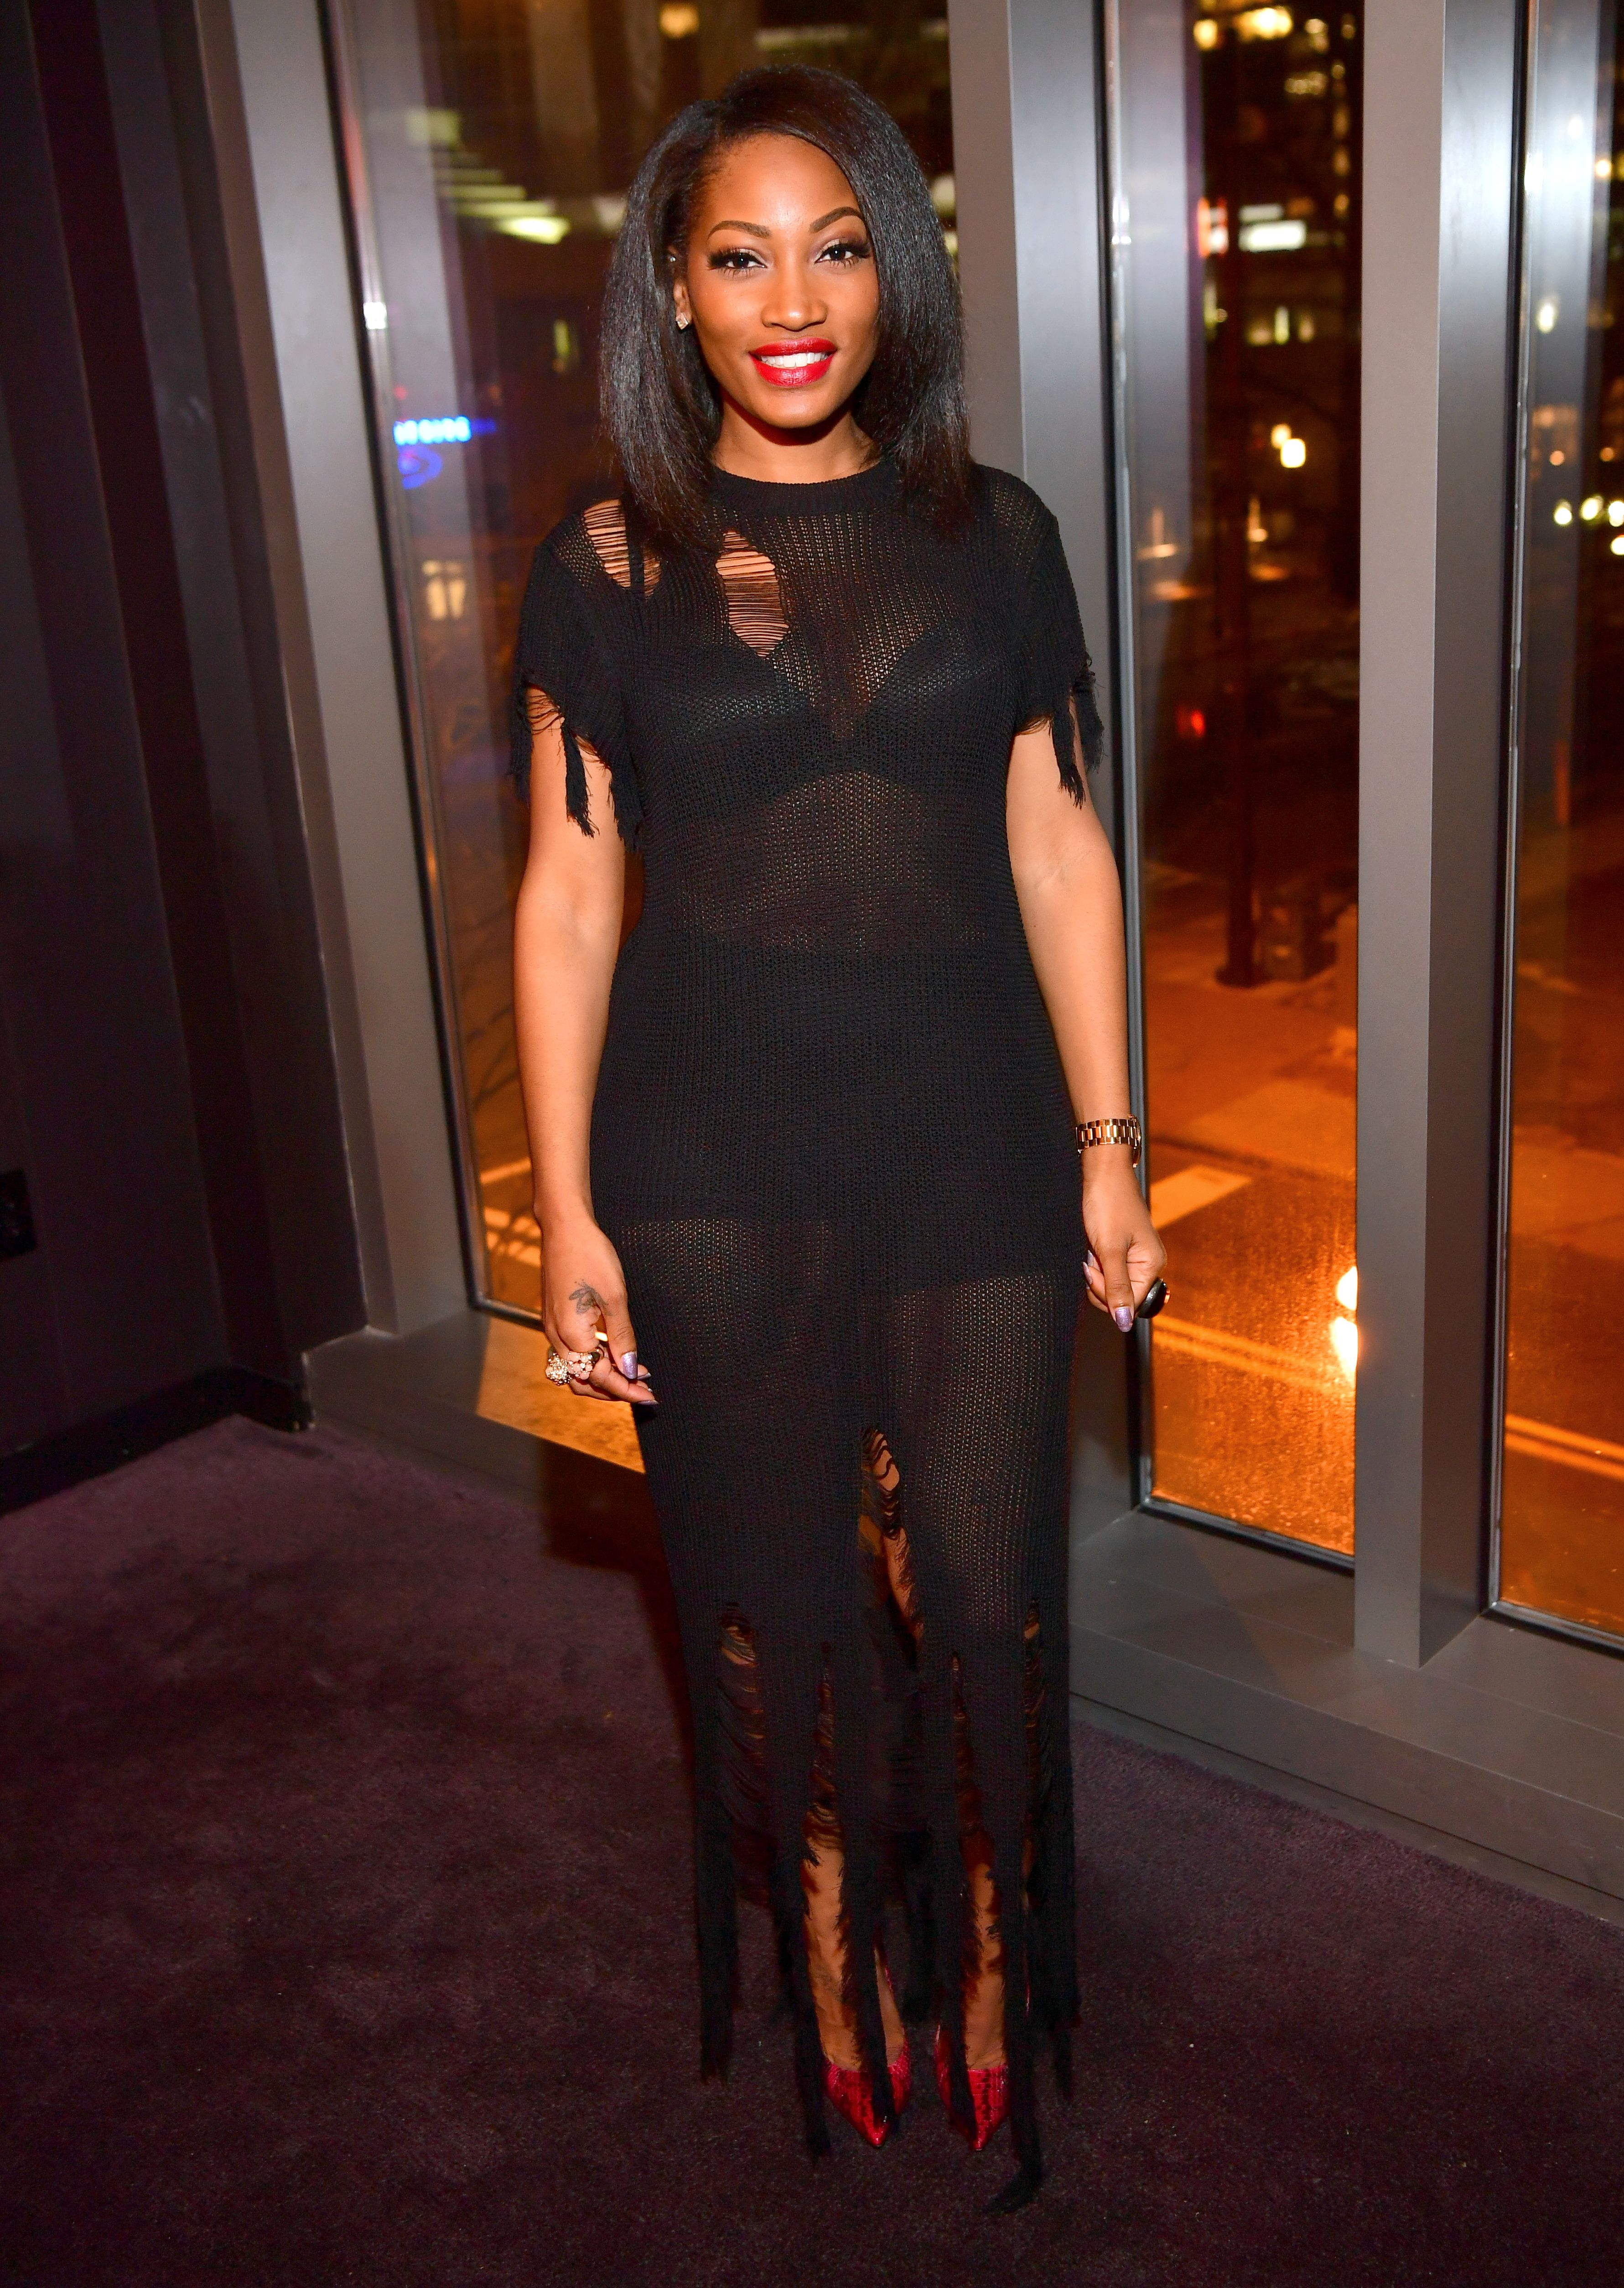 Erica Dixon at the Gold Room on January 19, 2017 in Atlanta. | Photo: Getty Images